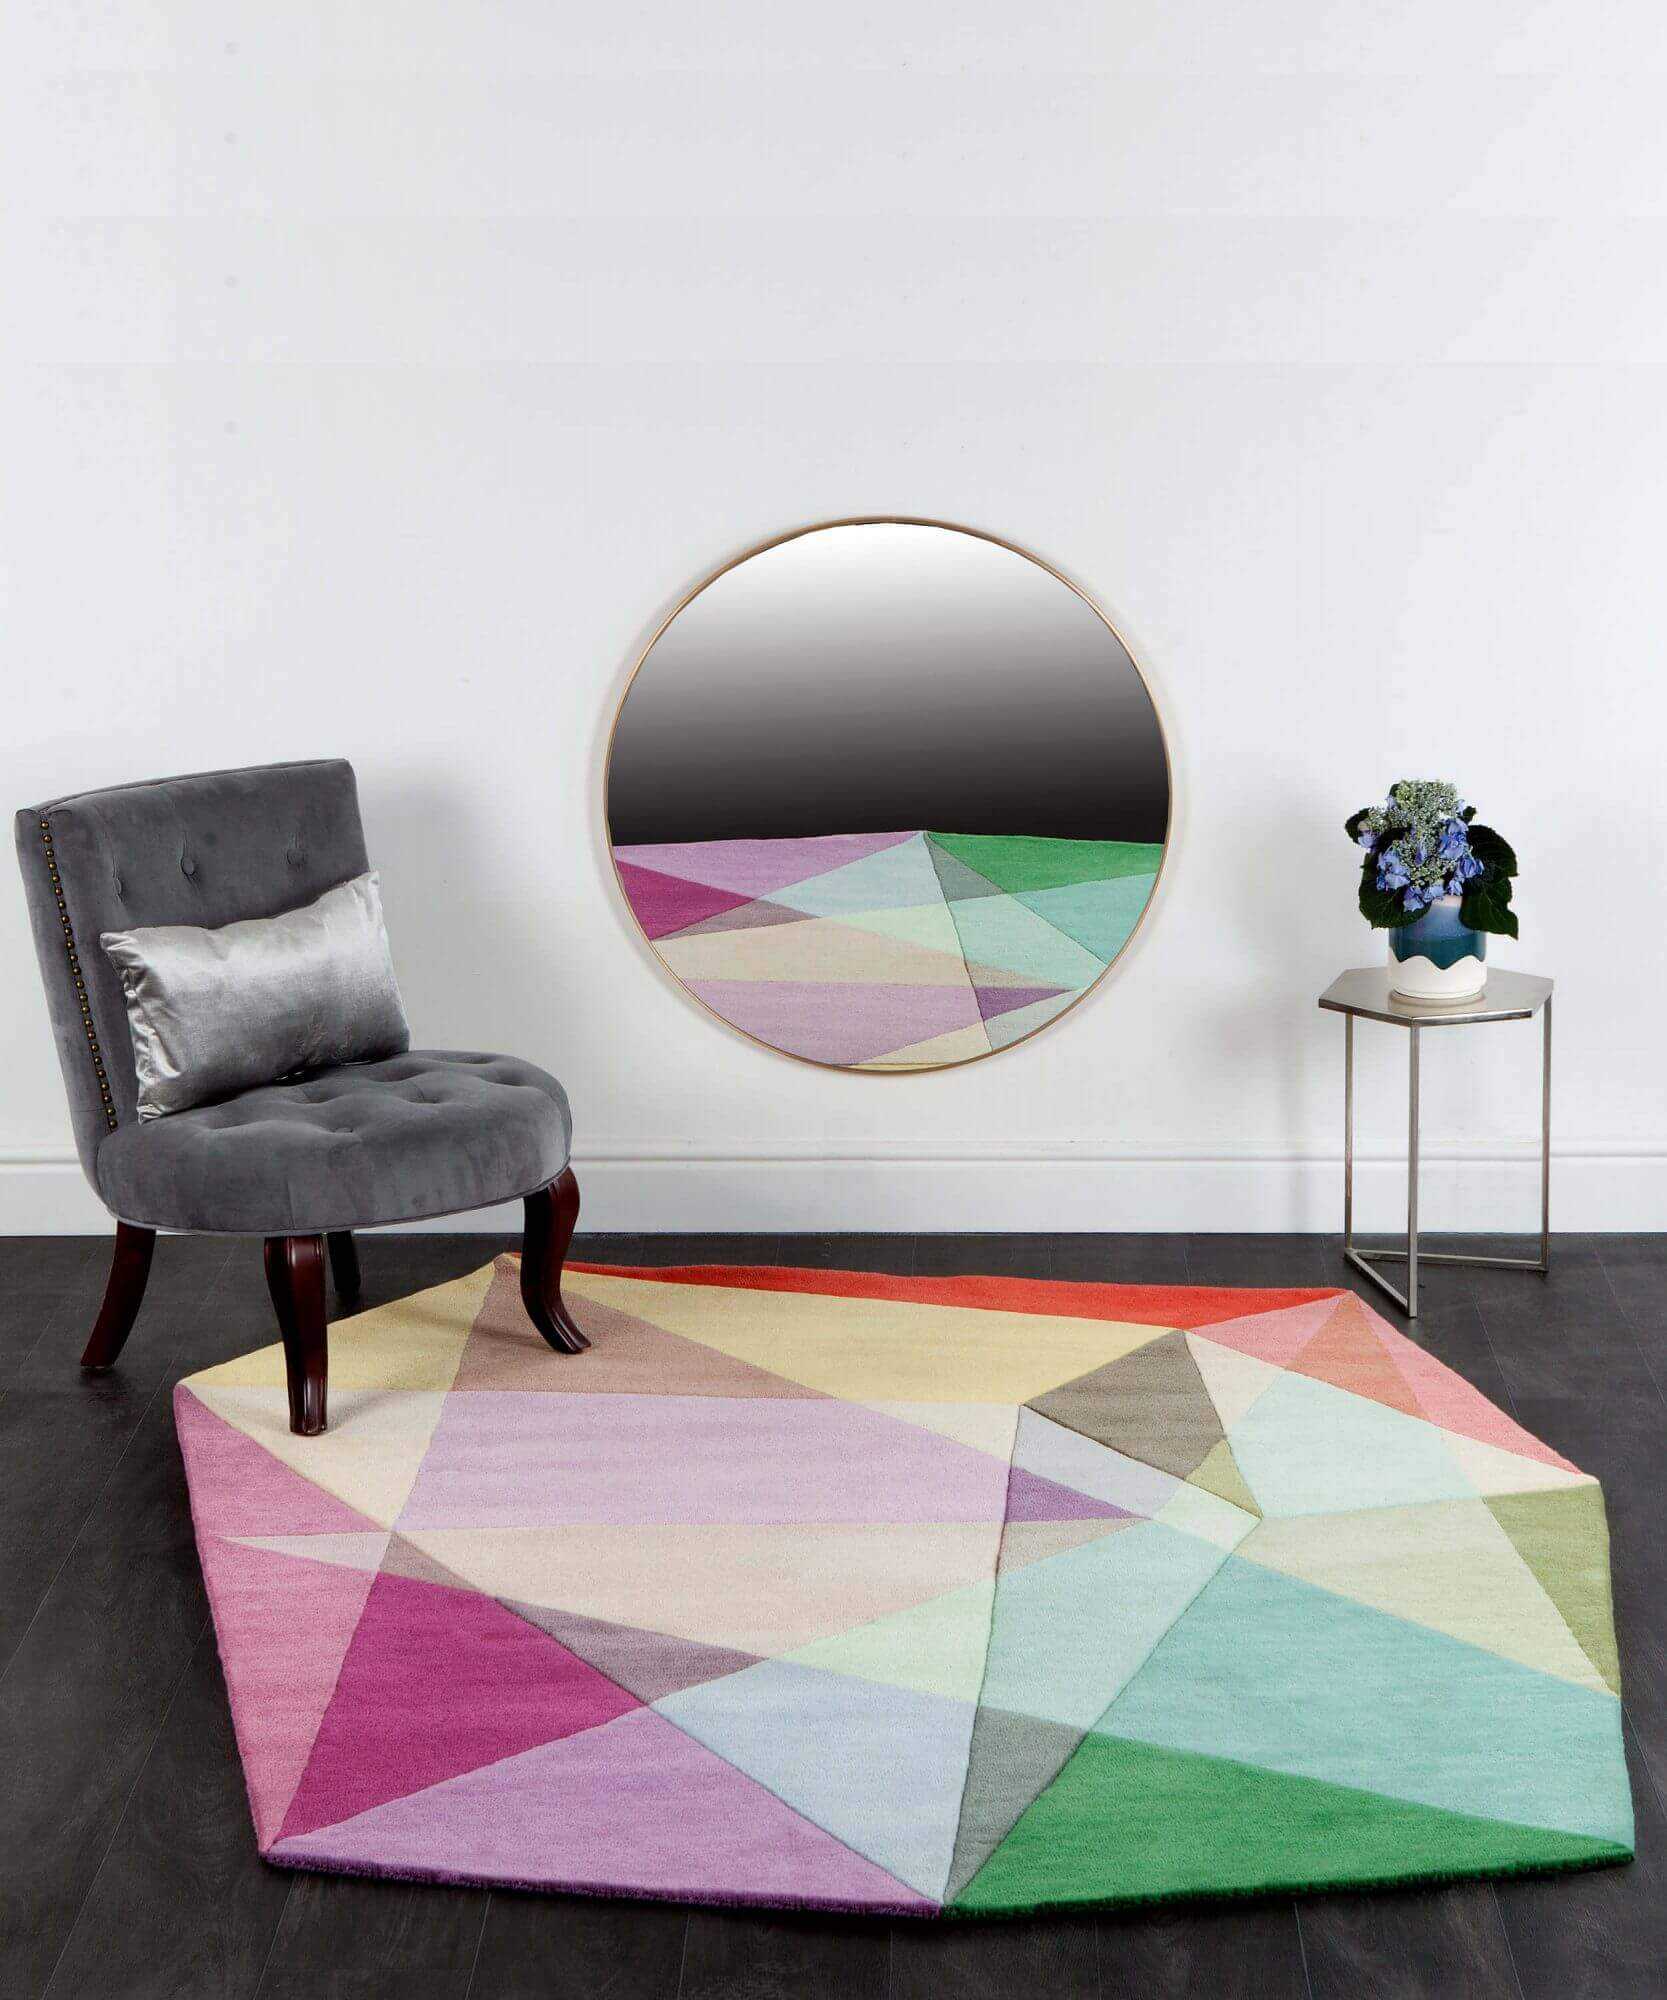 Sonya Winner Prism Pastels diamond rug in a modern design setting with Roce Bobois grey velvet cocktail chair, showcasing the irregular geometric pattern and soft green, pink and yellow colours of the handmade, natural designer rug